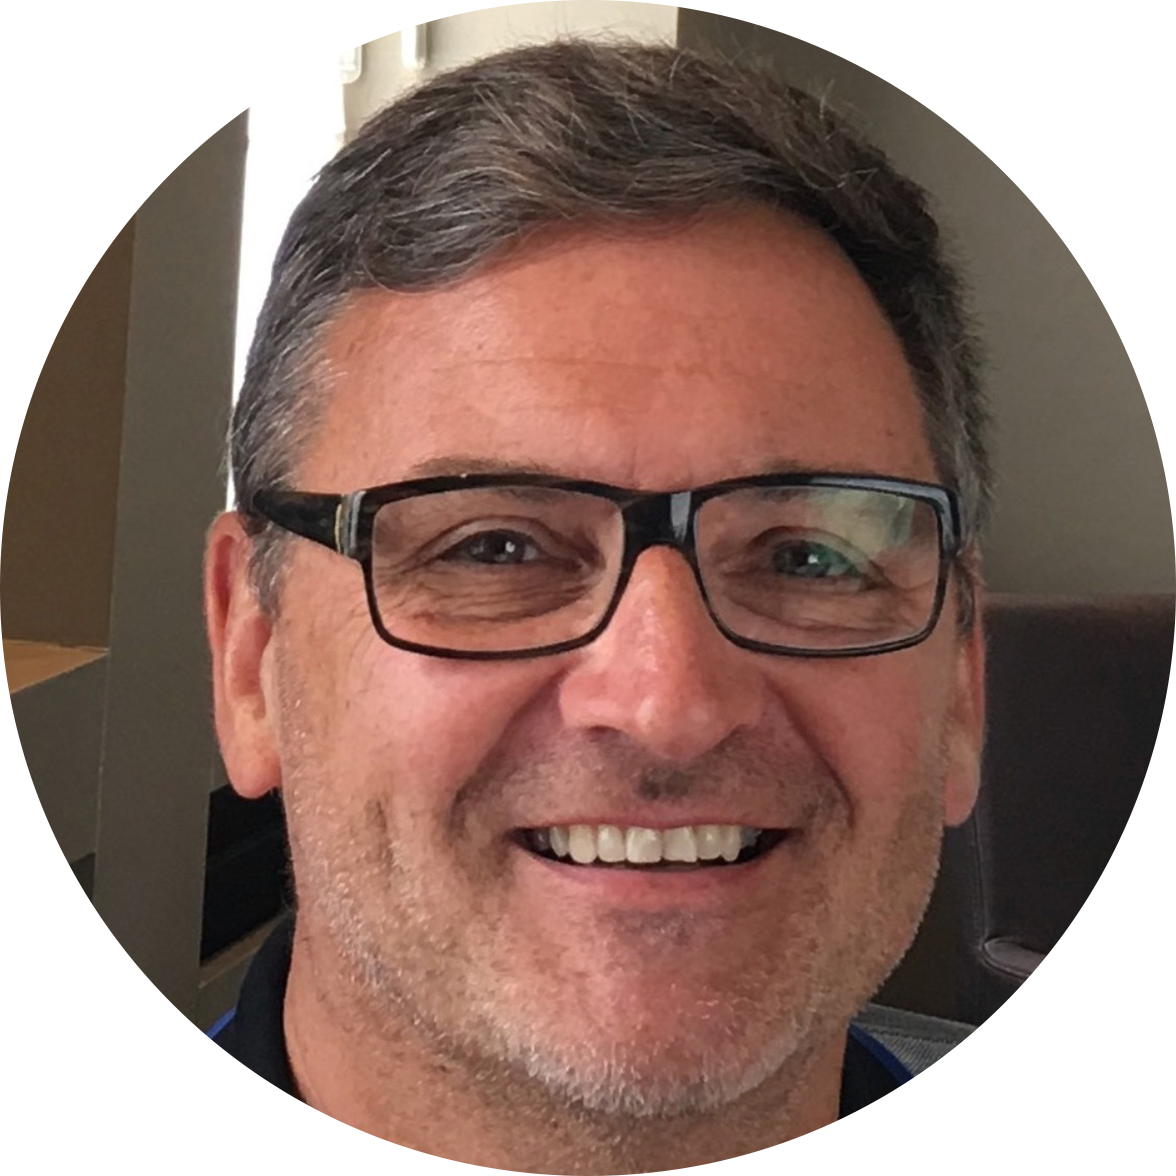 Pascal Decoussemaeker     VP of Sales    Background in dental tech sales for 20+ years. Launched dental tech products into over 100 countries.